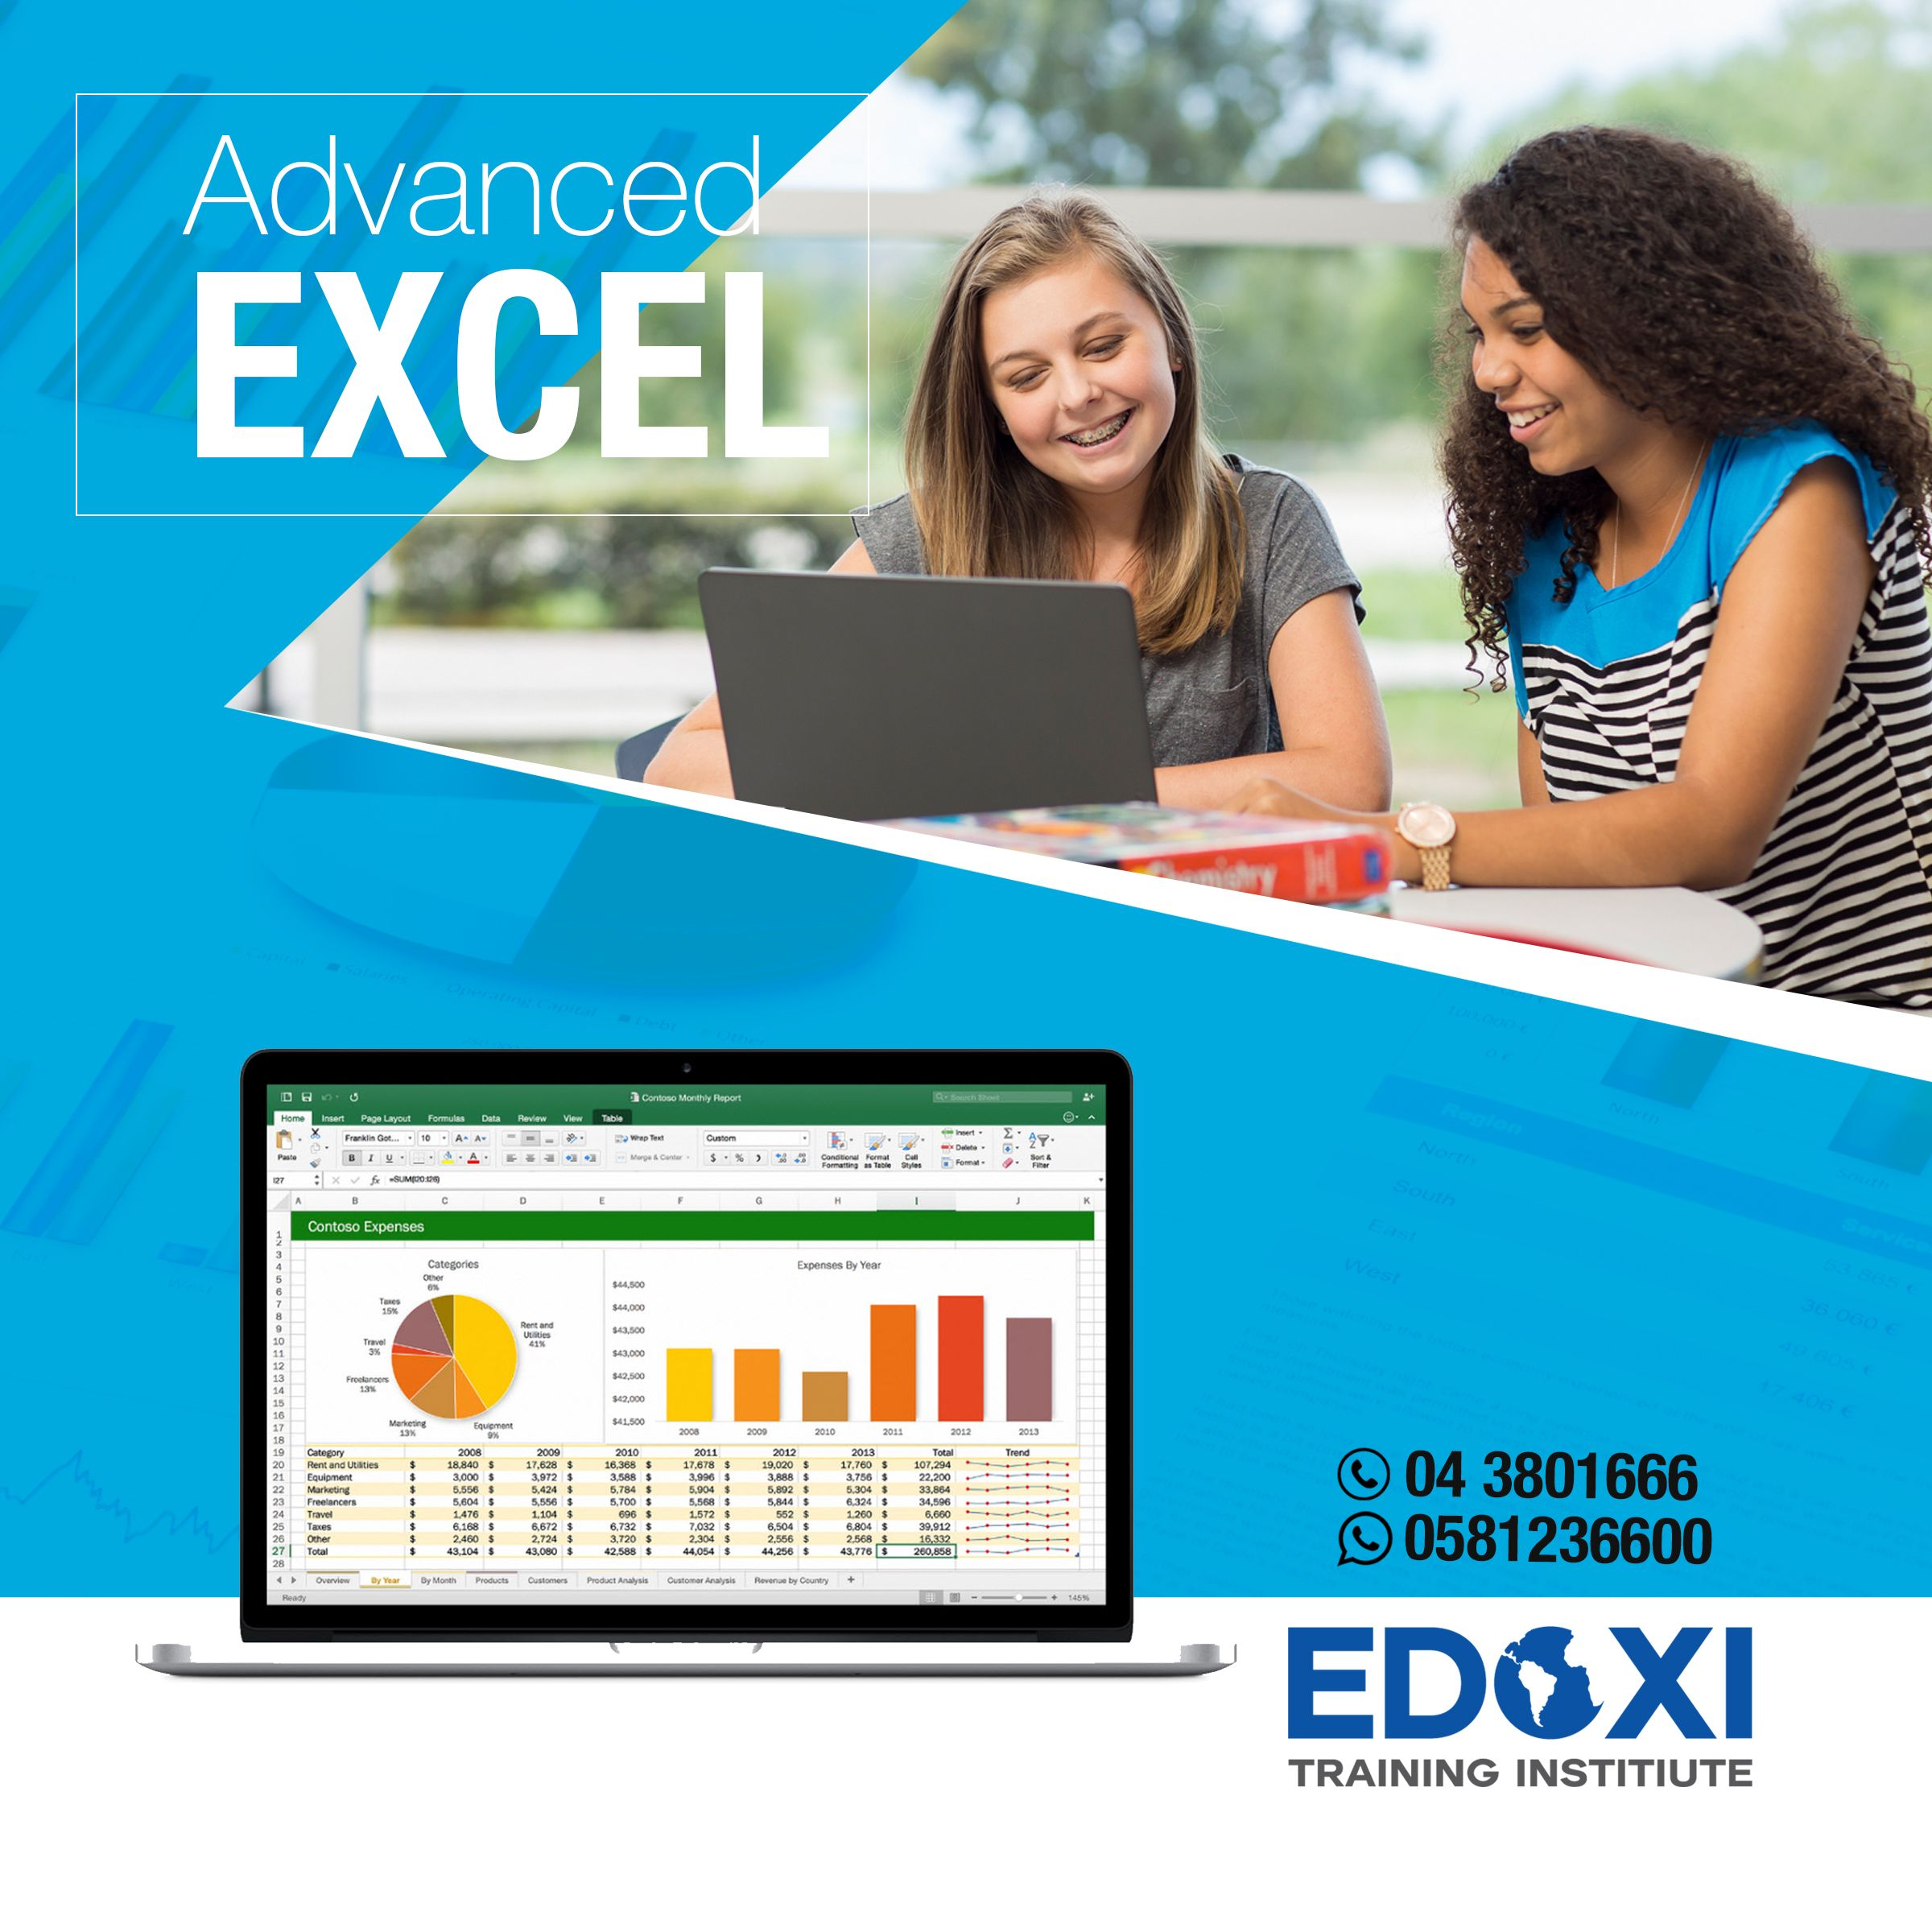 Advanced Excel Training Course In Dubai Take Your Excel Skills To The Next Level With Our Advanced Excel Course Our Training Pr Excel Dubai Training Courses